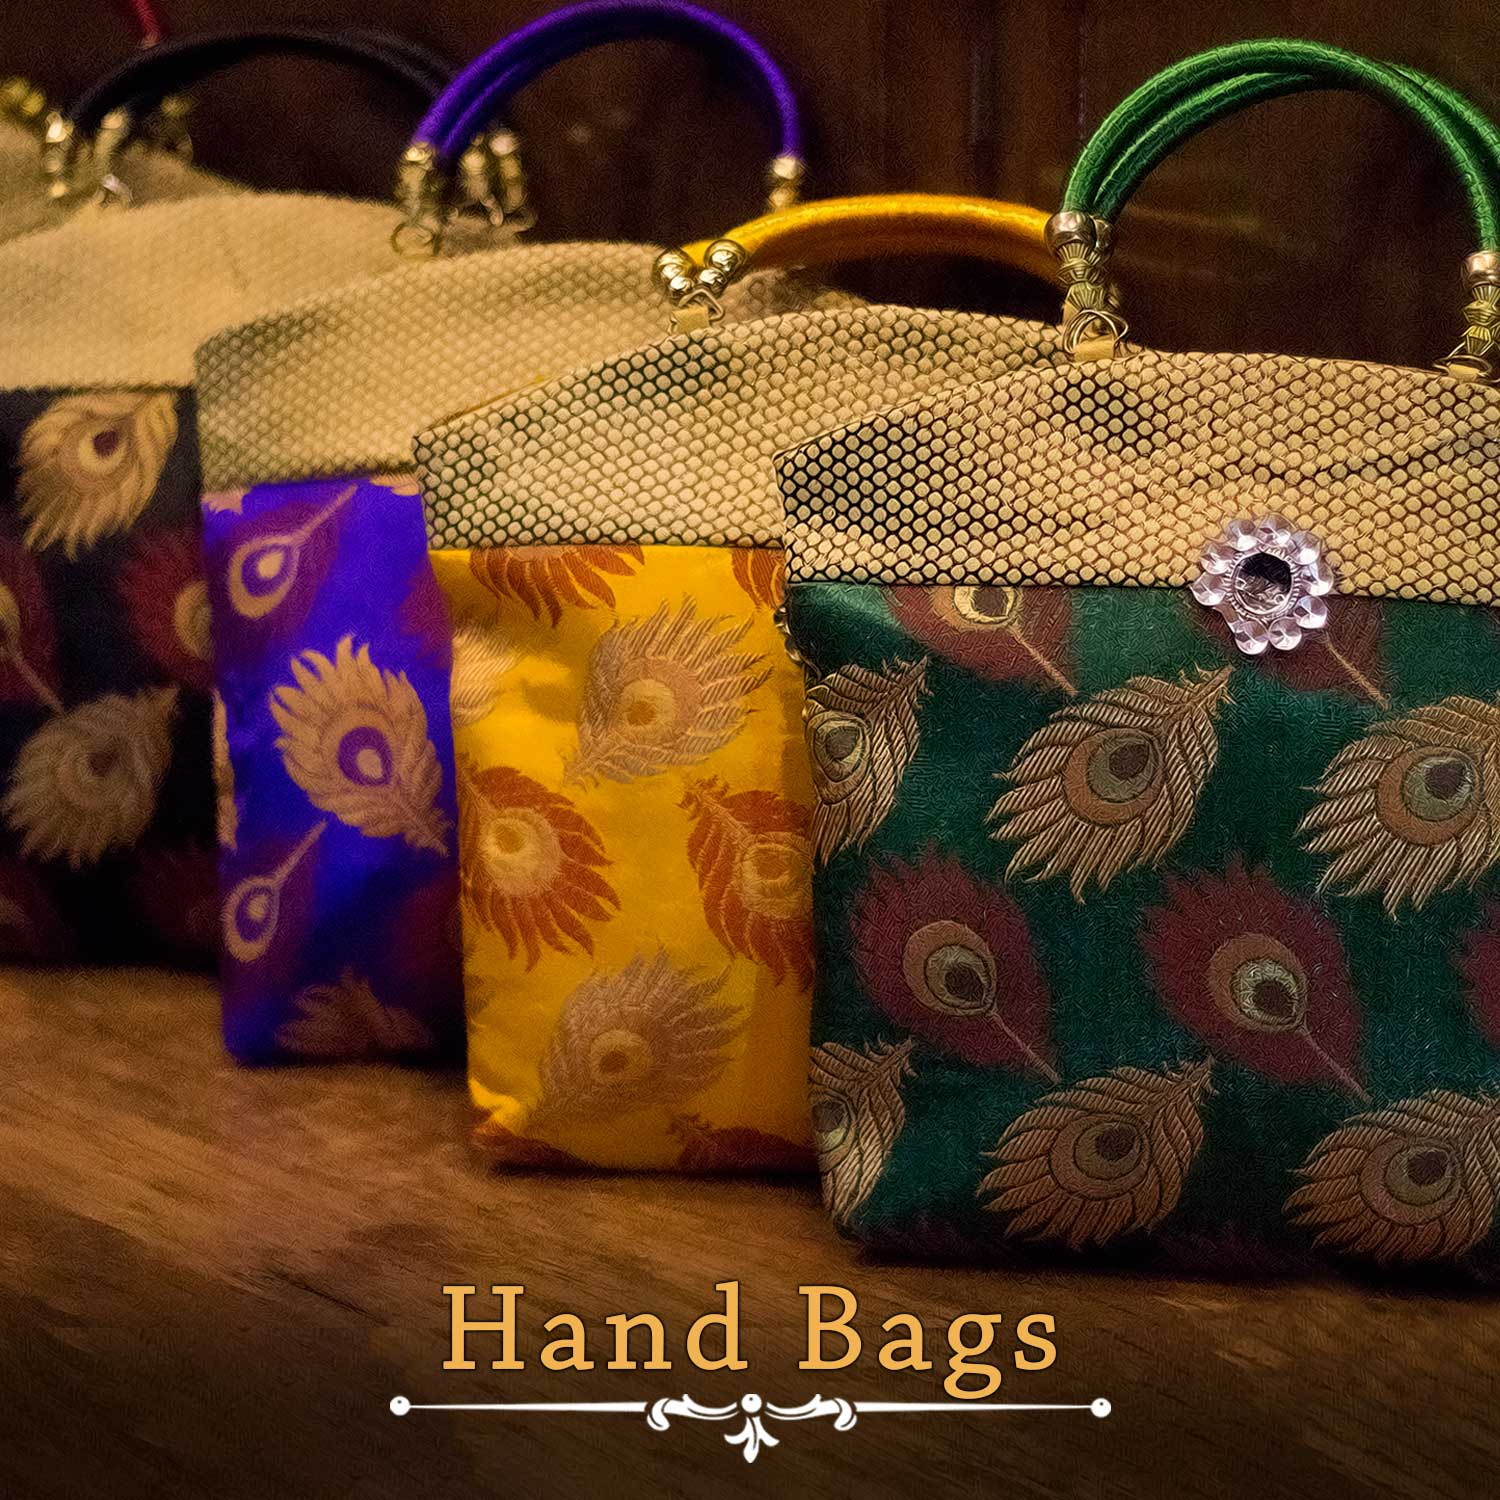 Hand Bags Return Gift For Wedding, Baby Shower By Wedtree